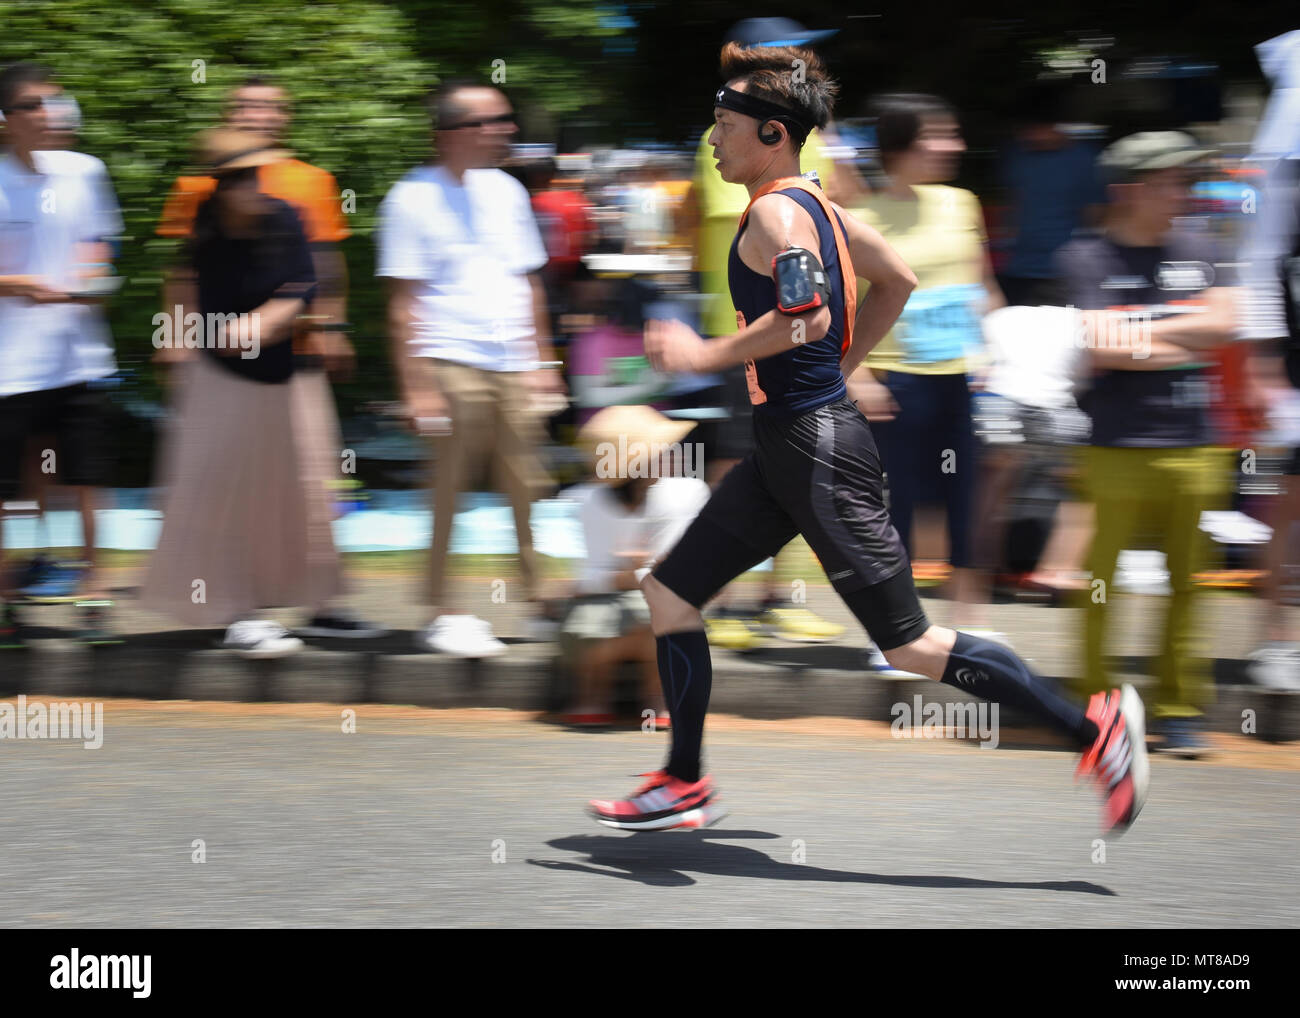 A participant runs the Ekiden Race at Yokota Air Base, Japan, June 4, 2017. More than 5,000 runners participated in the event hosted by the Yokota Striders Running Club. (U.S. Air Force photo by Machiko Arita) - Stock Image